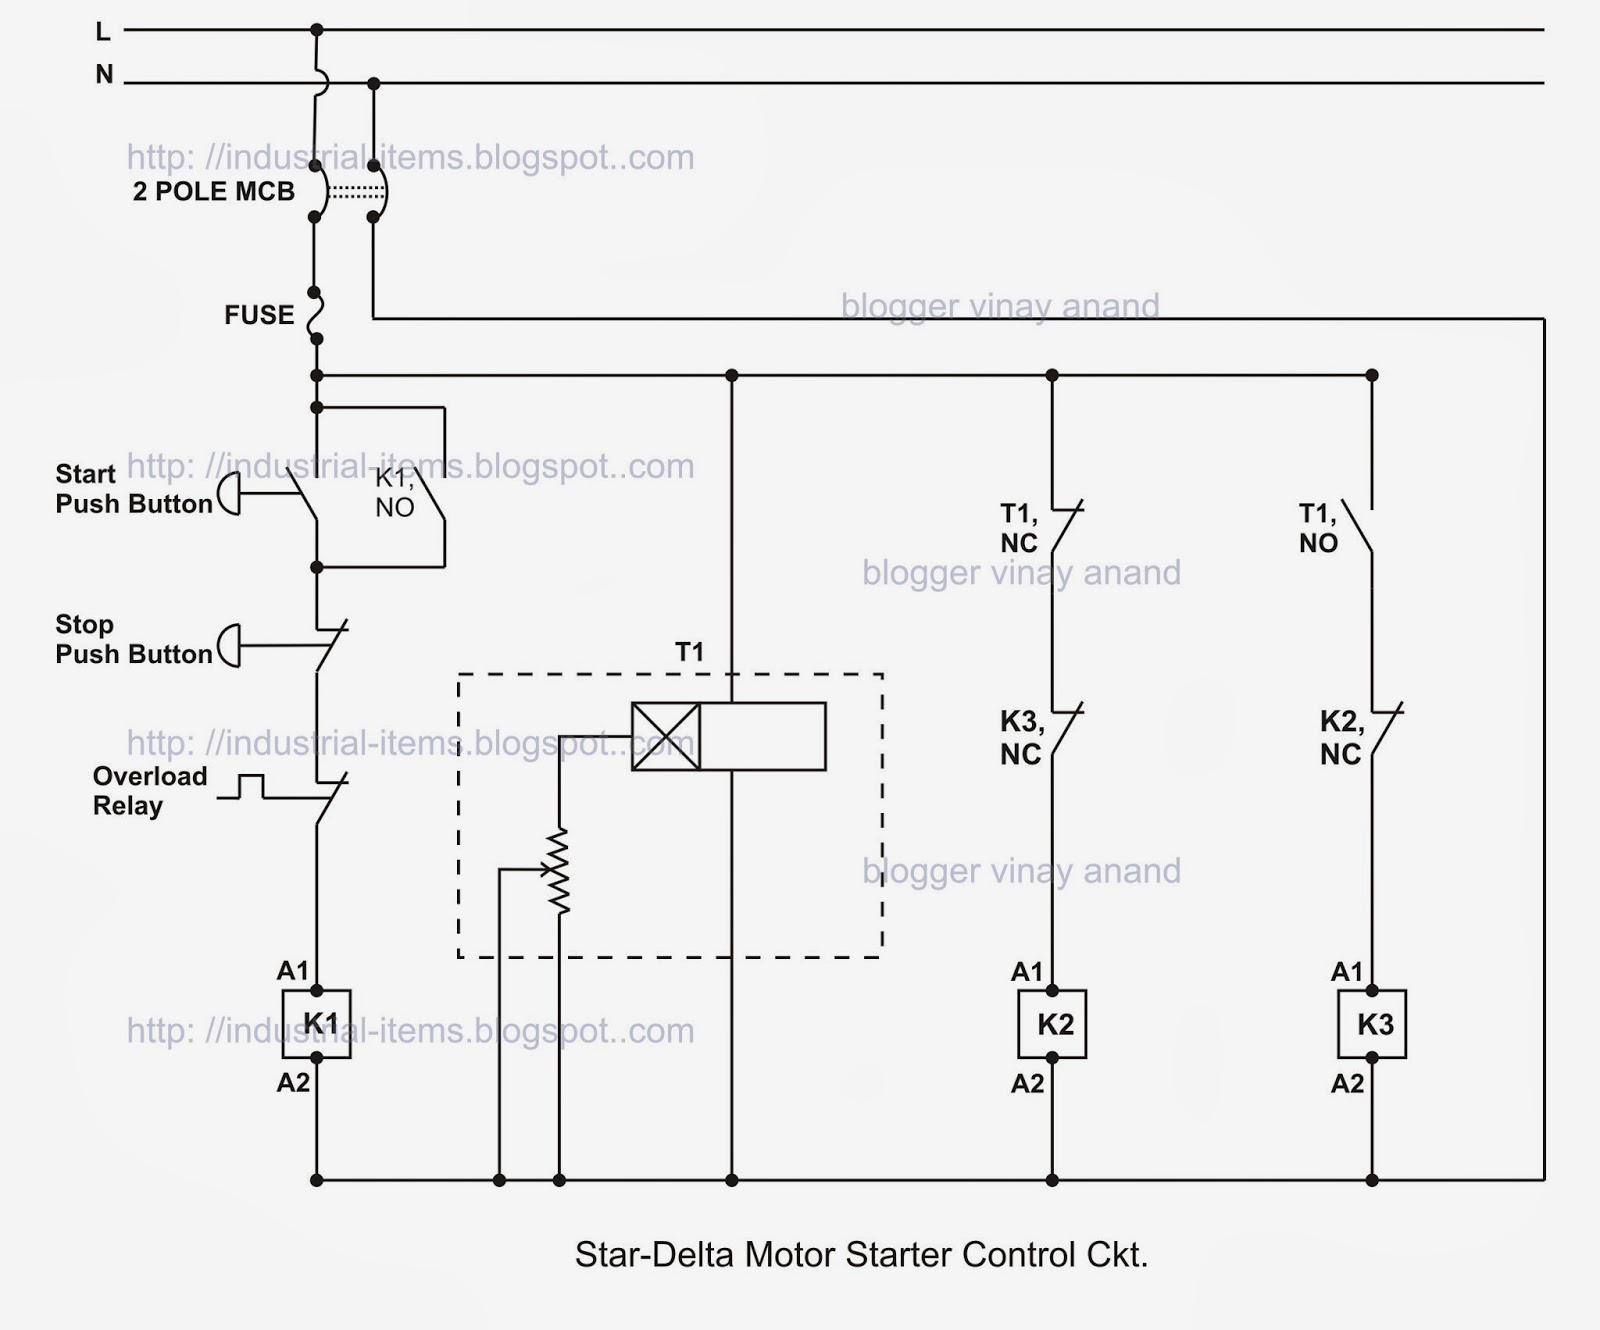 phase motor connection star delta y reverse forward with timer 1star delta wiring diagram sf1r1 1 wiring diagram sourcestar delta control wiring diagram best wiring librarystar